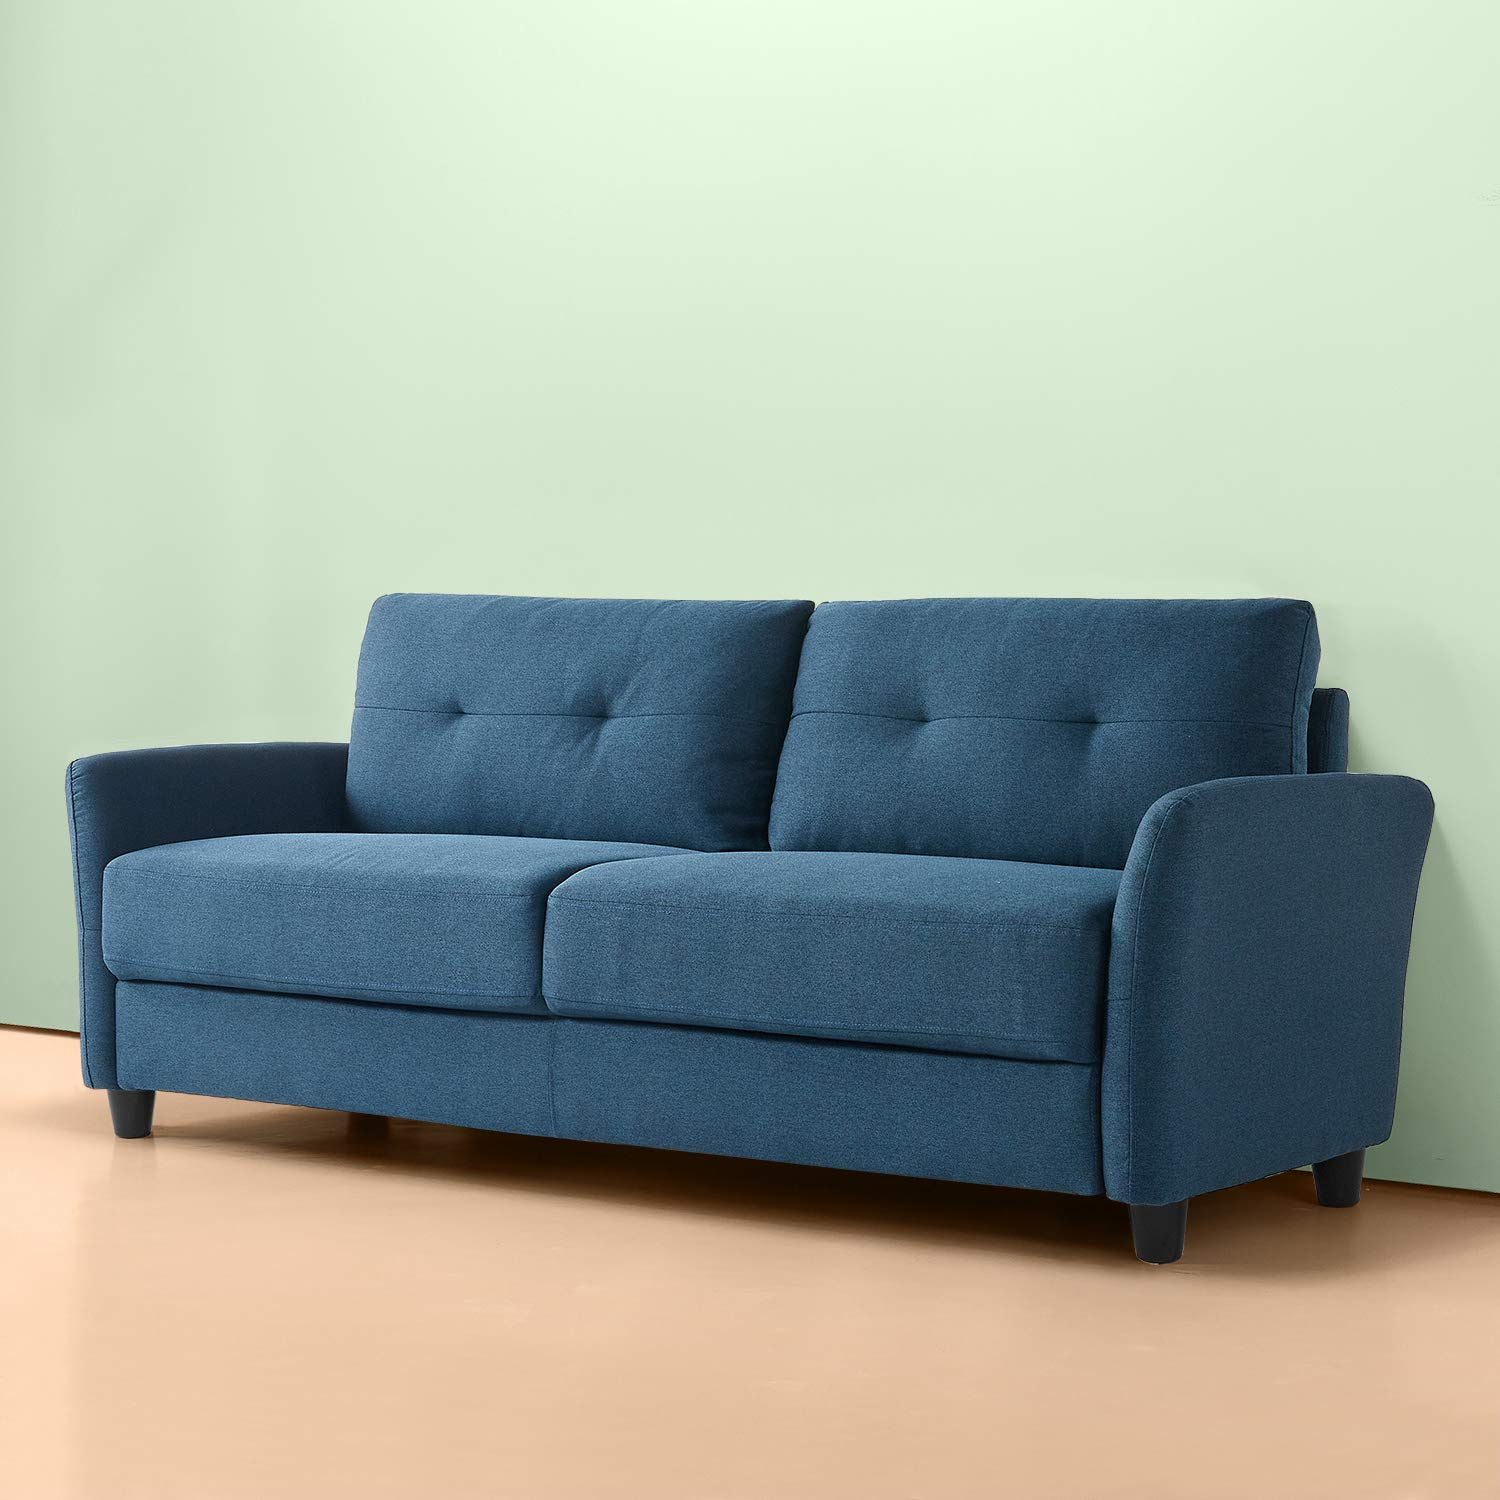 Zinus Ricardo Contemporary Upholstered 78.4 Inch / Living Room Couch